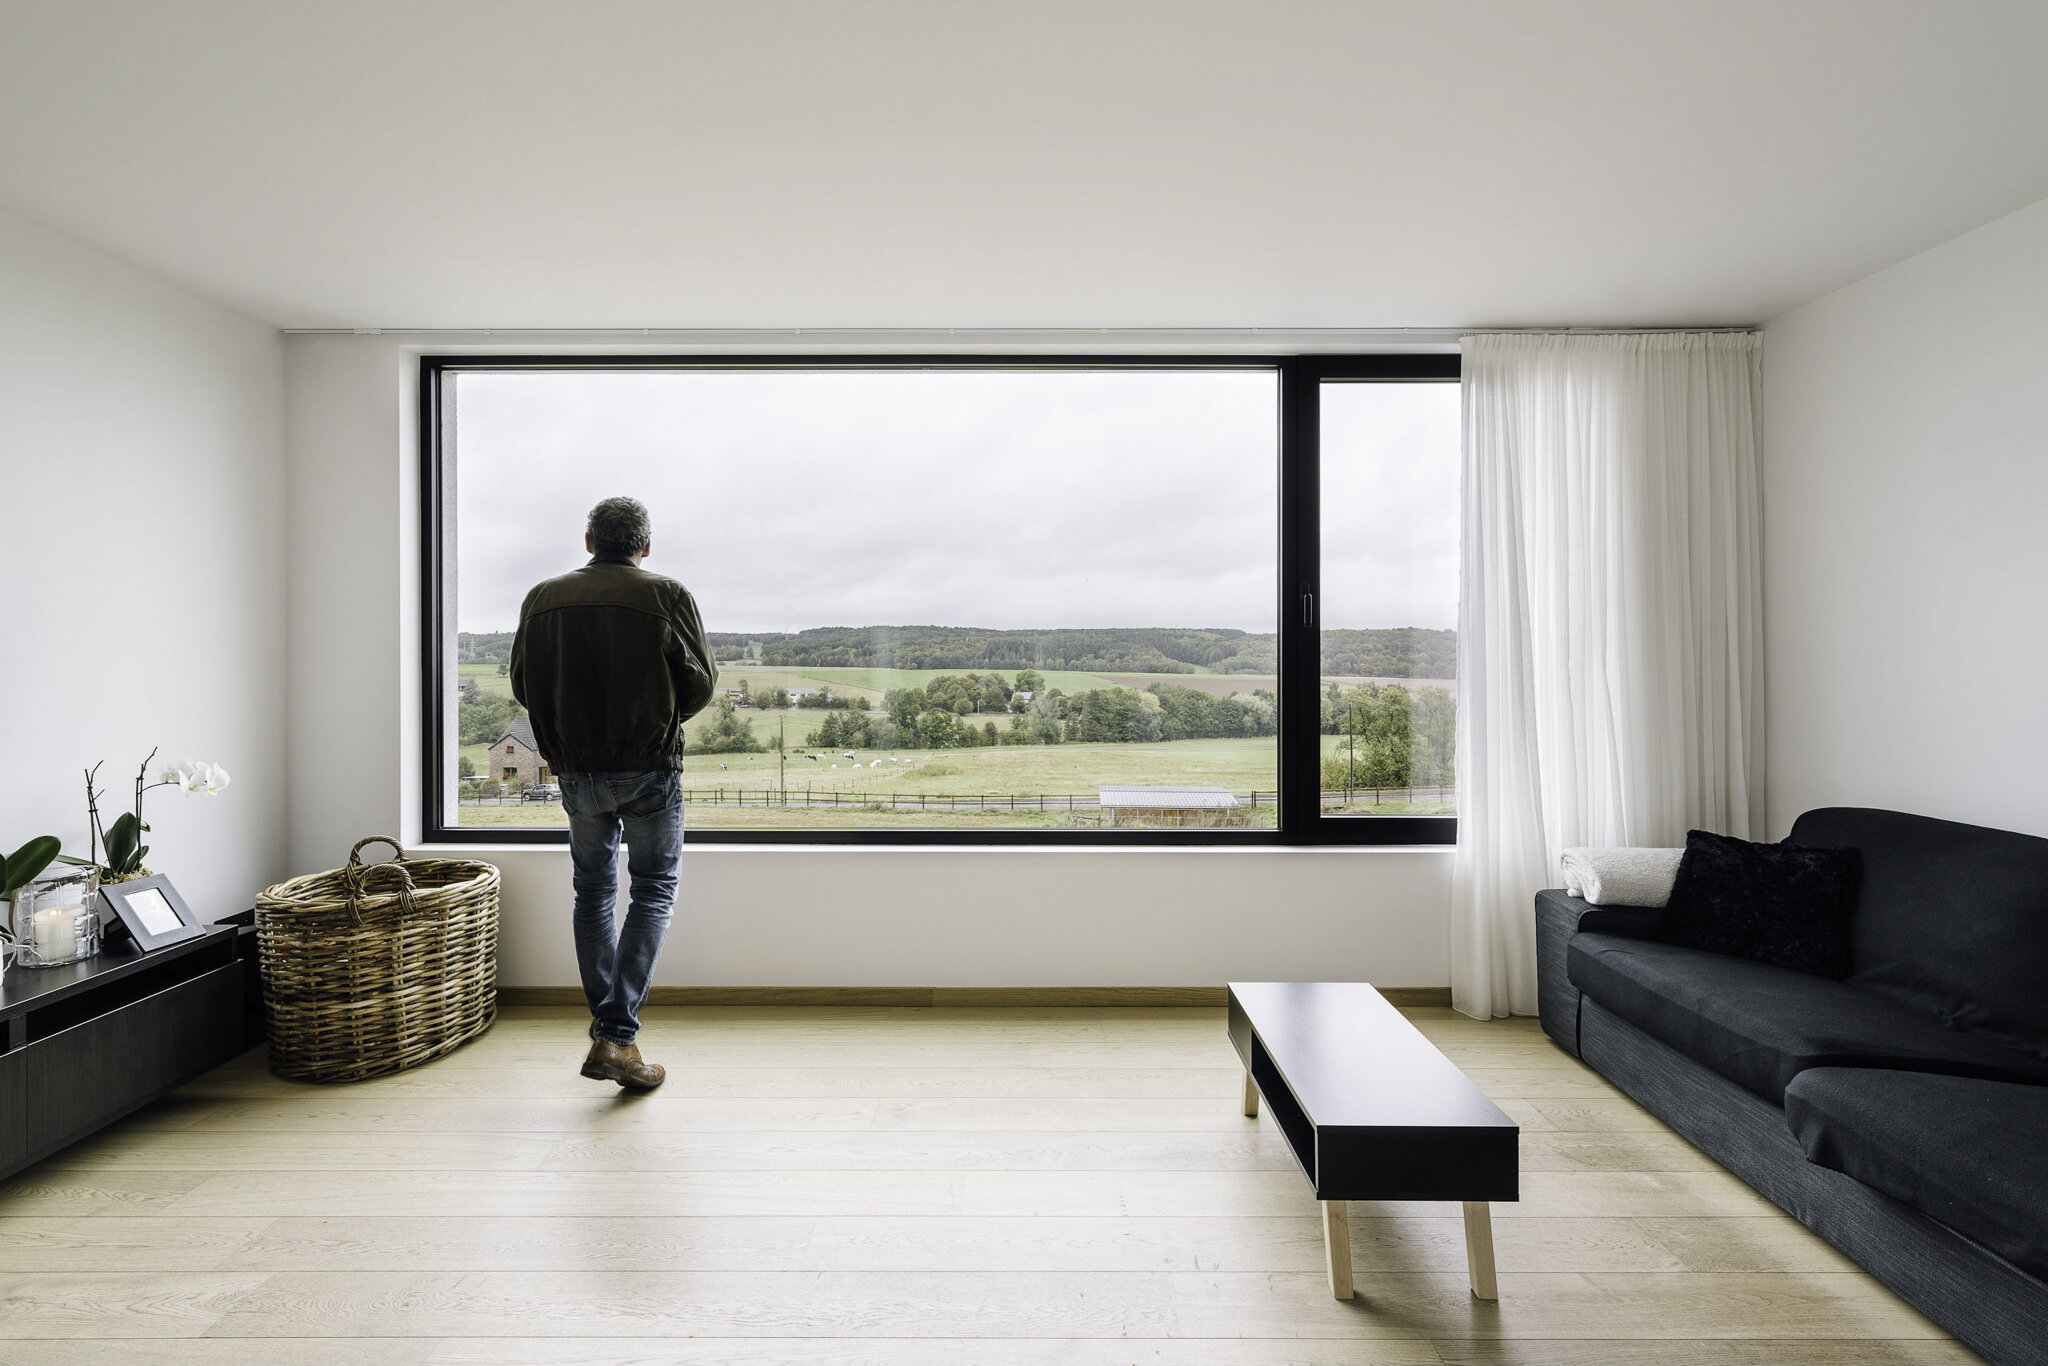 House by Quattro-Concept Architects in Assesse, Belgium